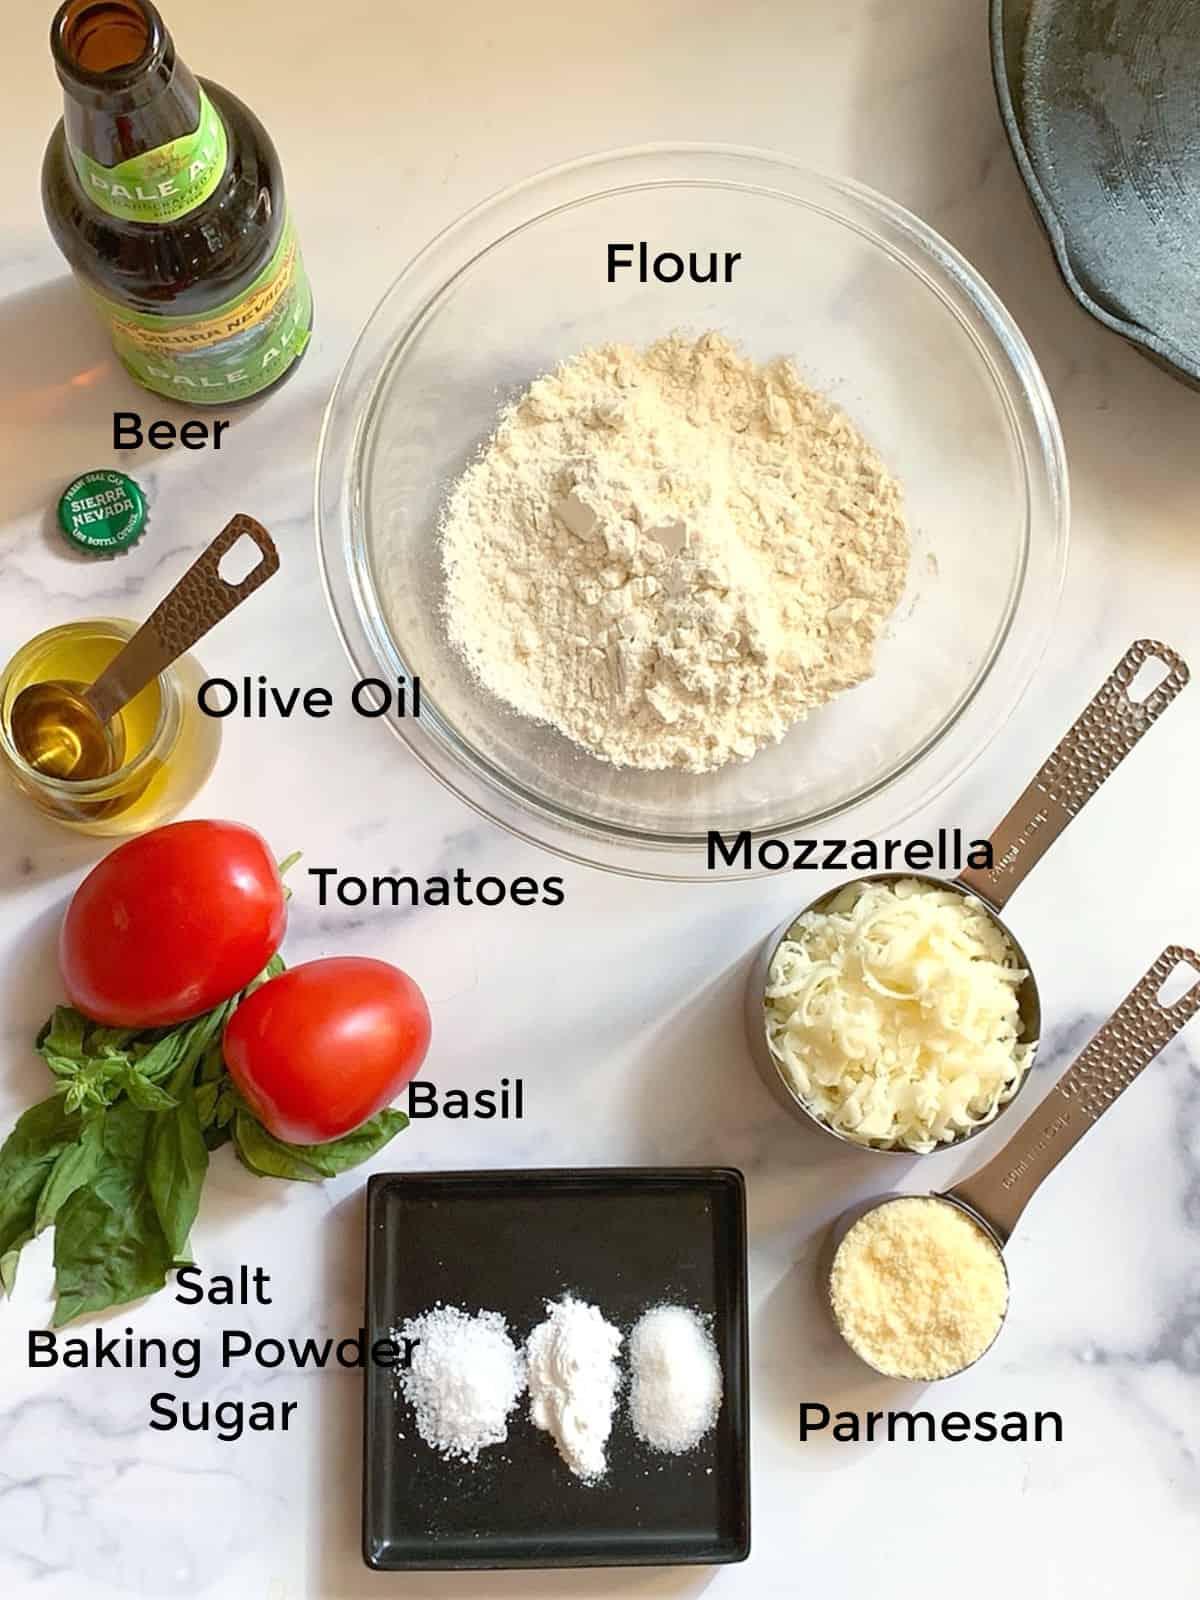 Flour, cheese, tomatoes, basil, oil,beer to make a pizza dough.